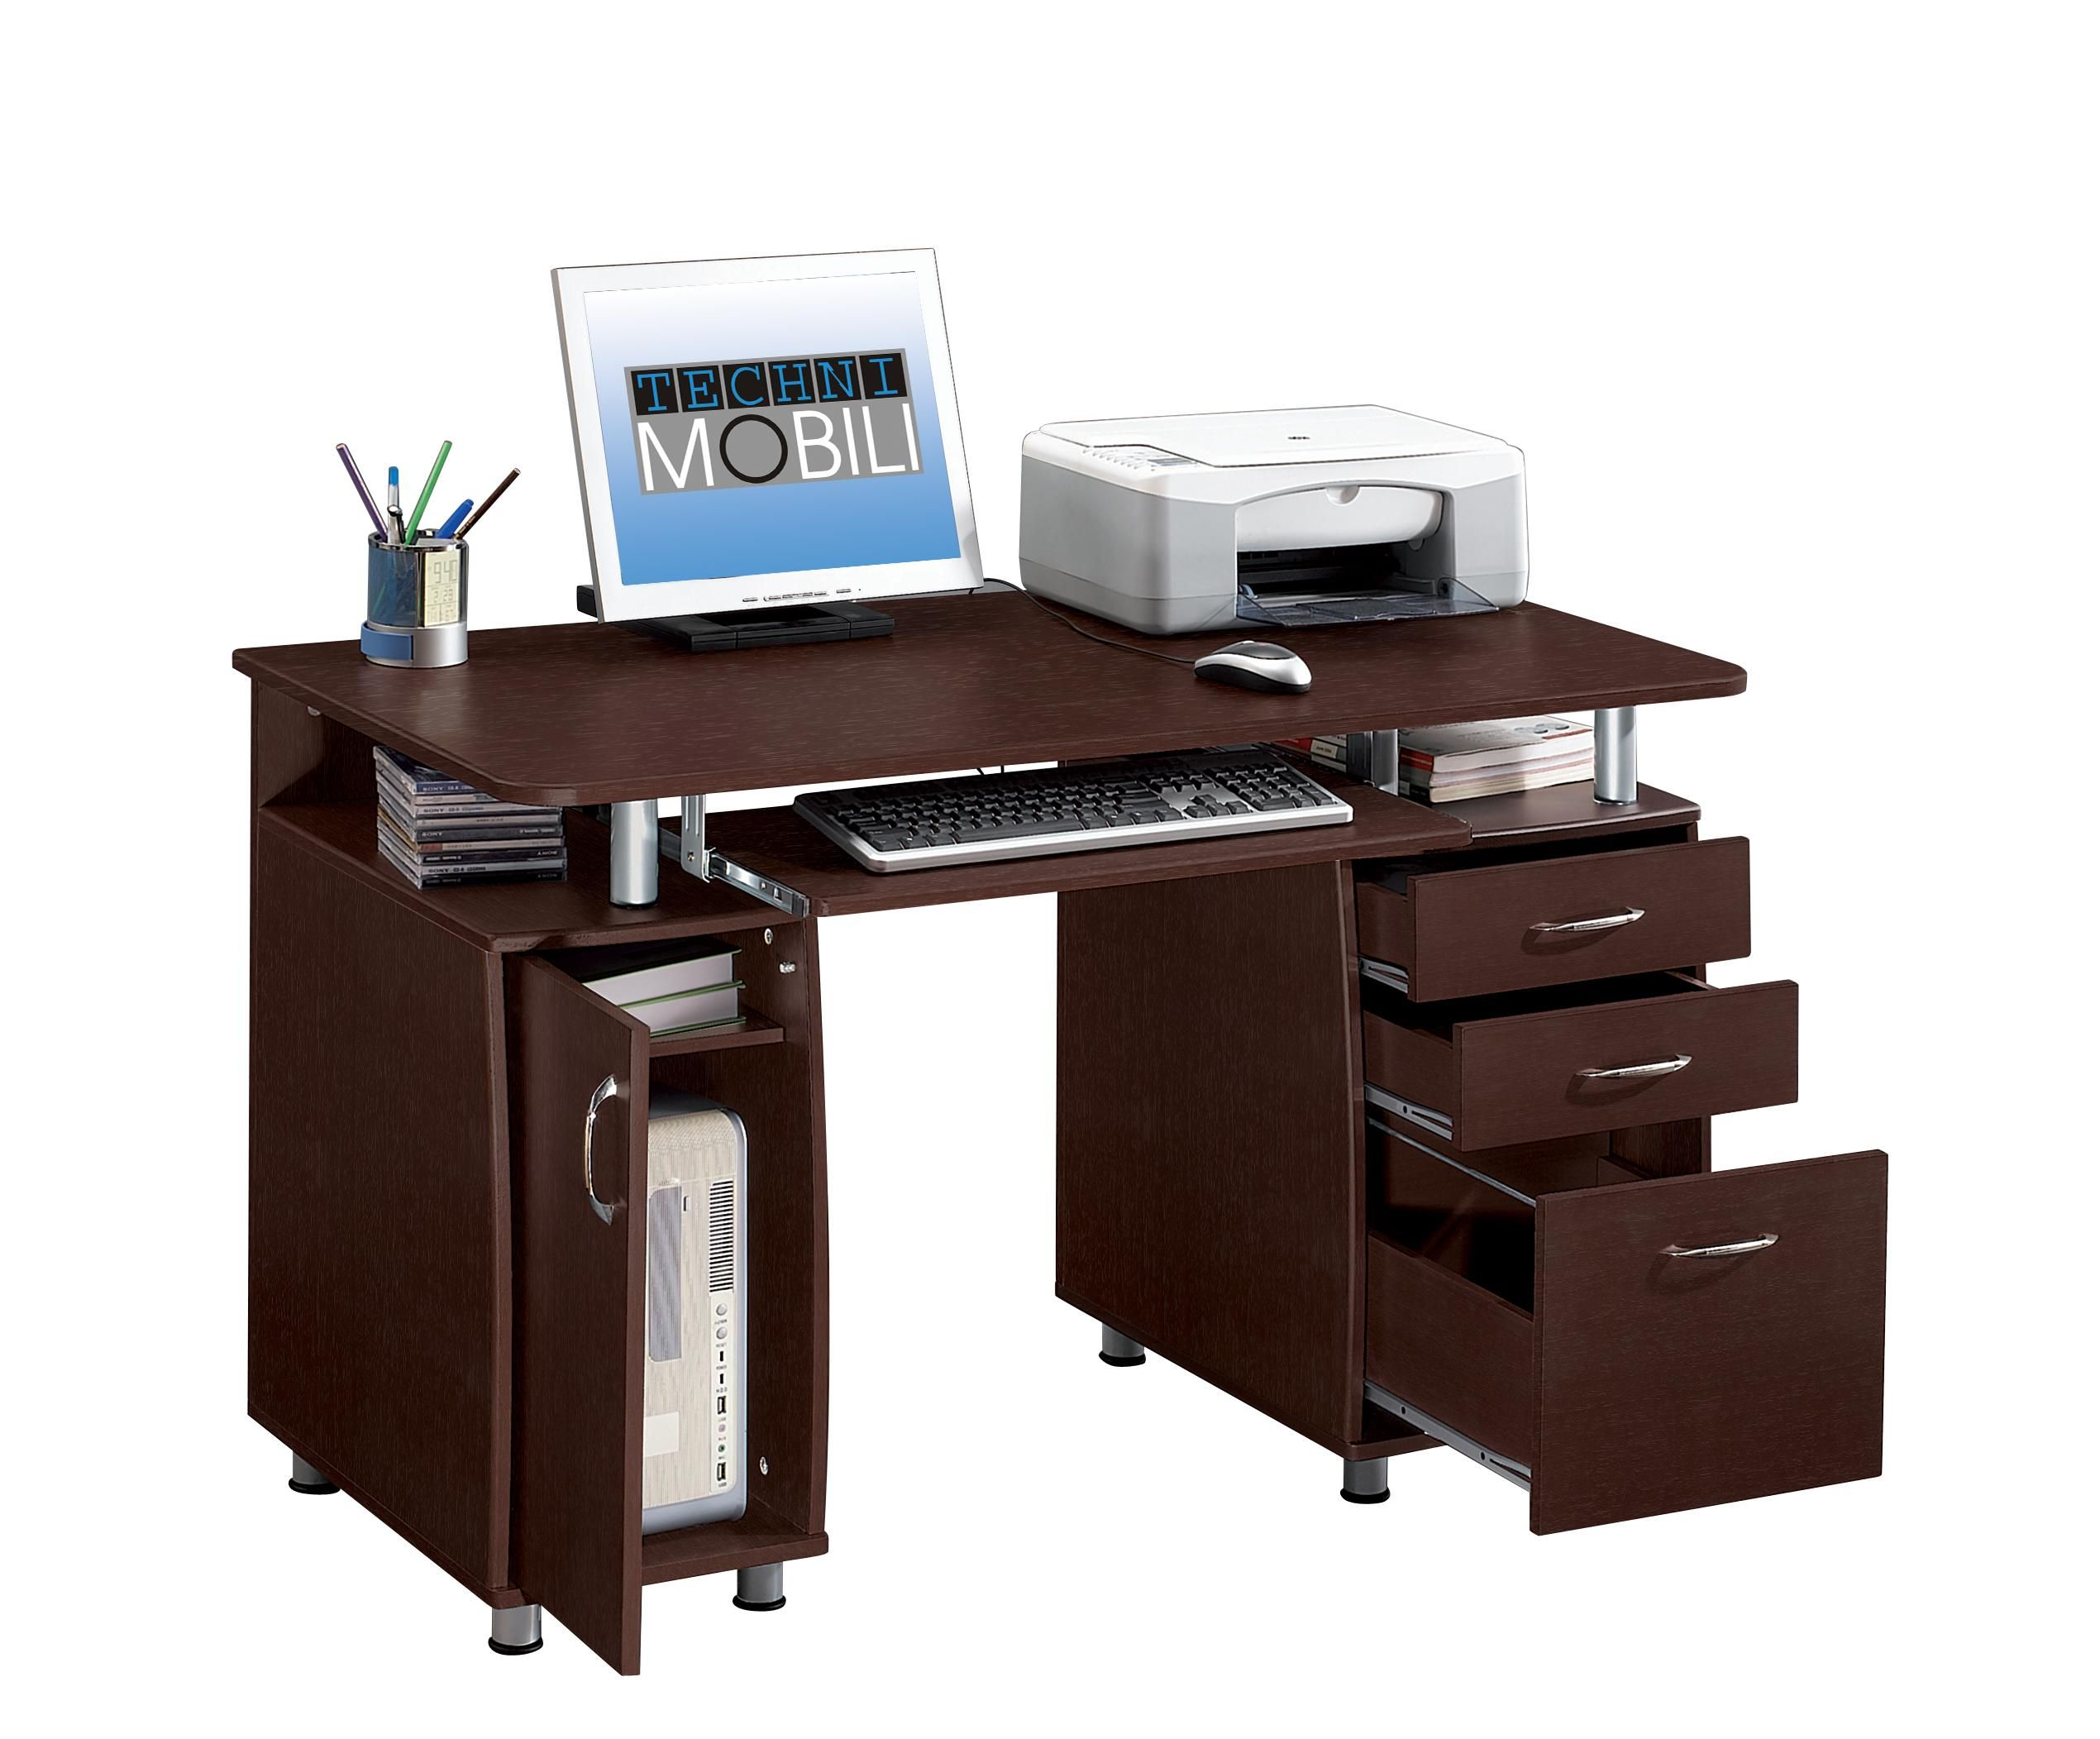 drawers sides flair computer with locking both office small on glass tremendous top lockable cupboard desk